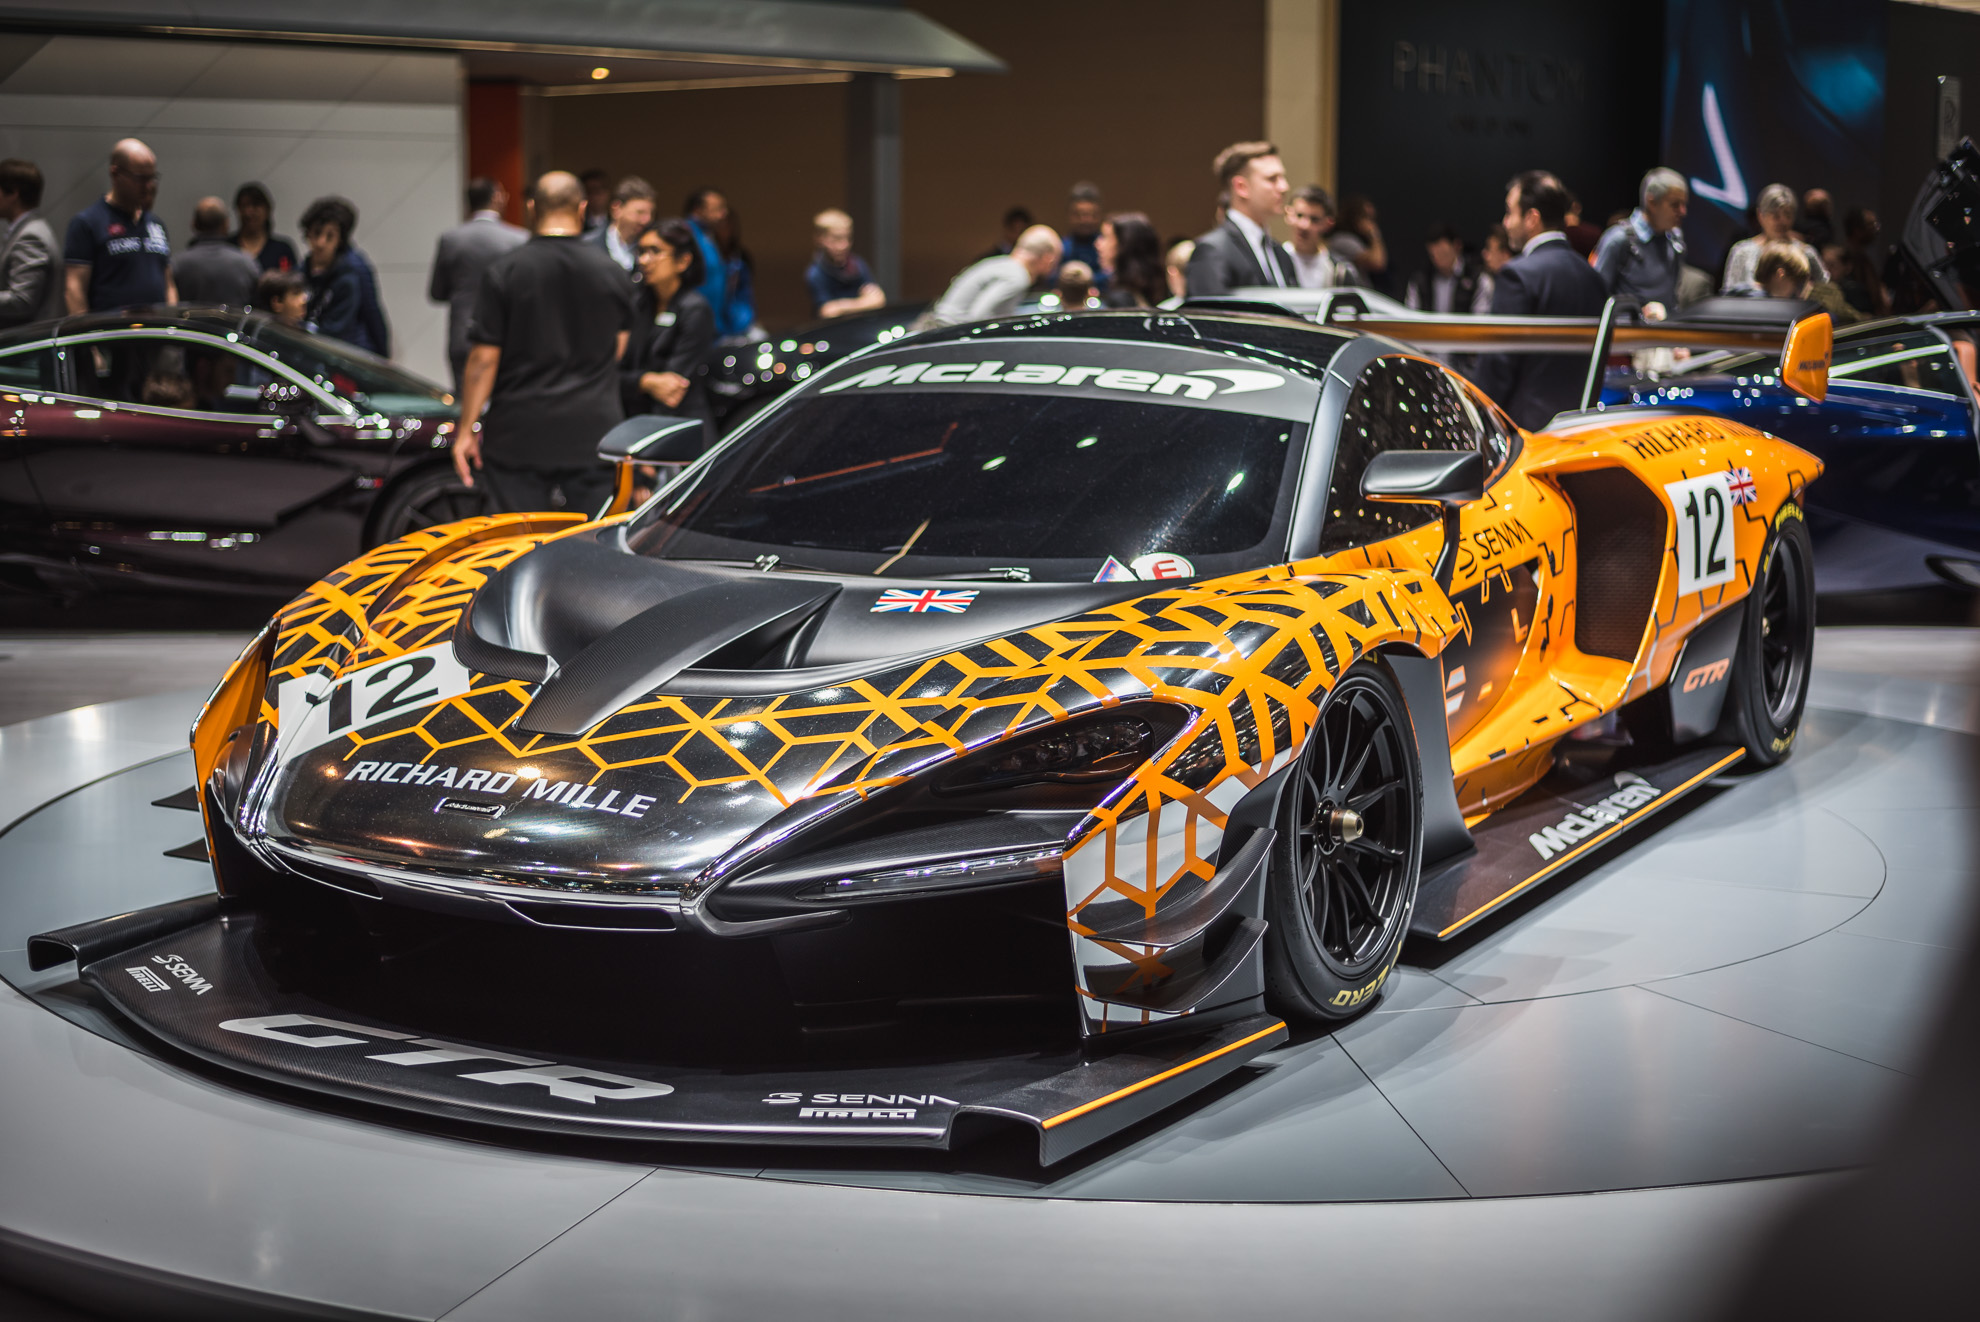 geneva-international-motor-show-igors-sinitsins-25